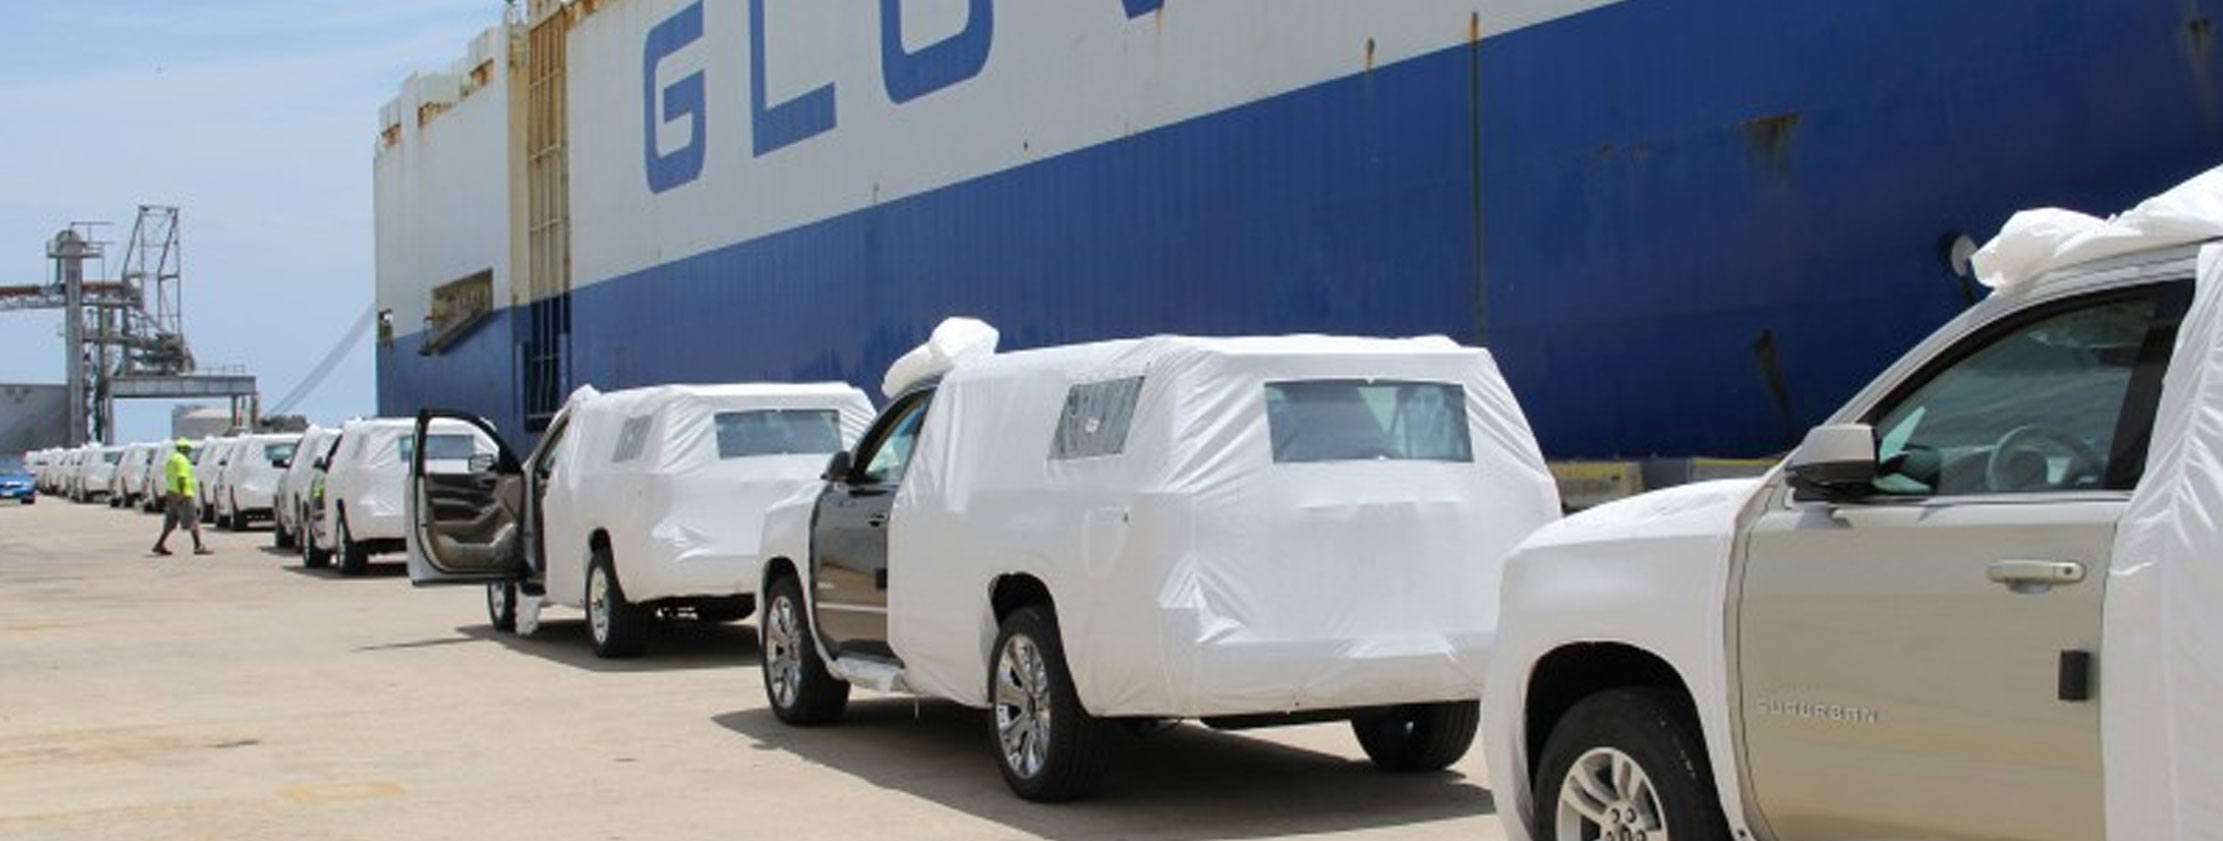 hoegh autoliners transports cars from a roll on/off terminal at port freeport